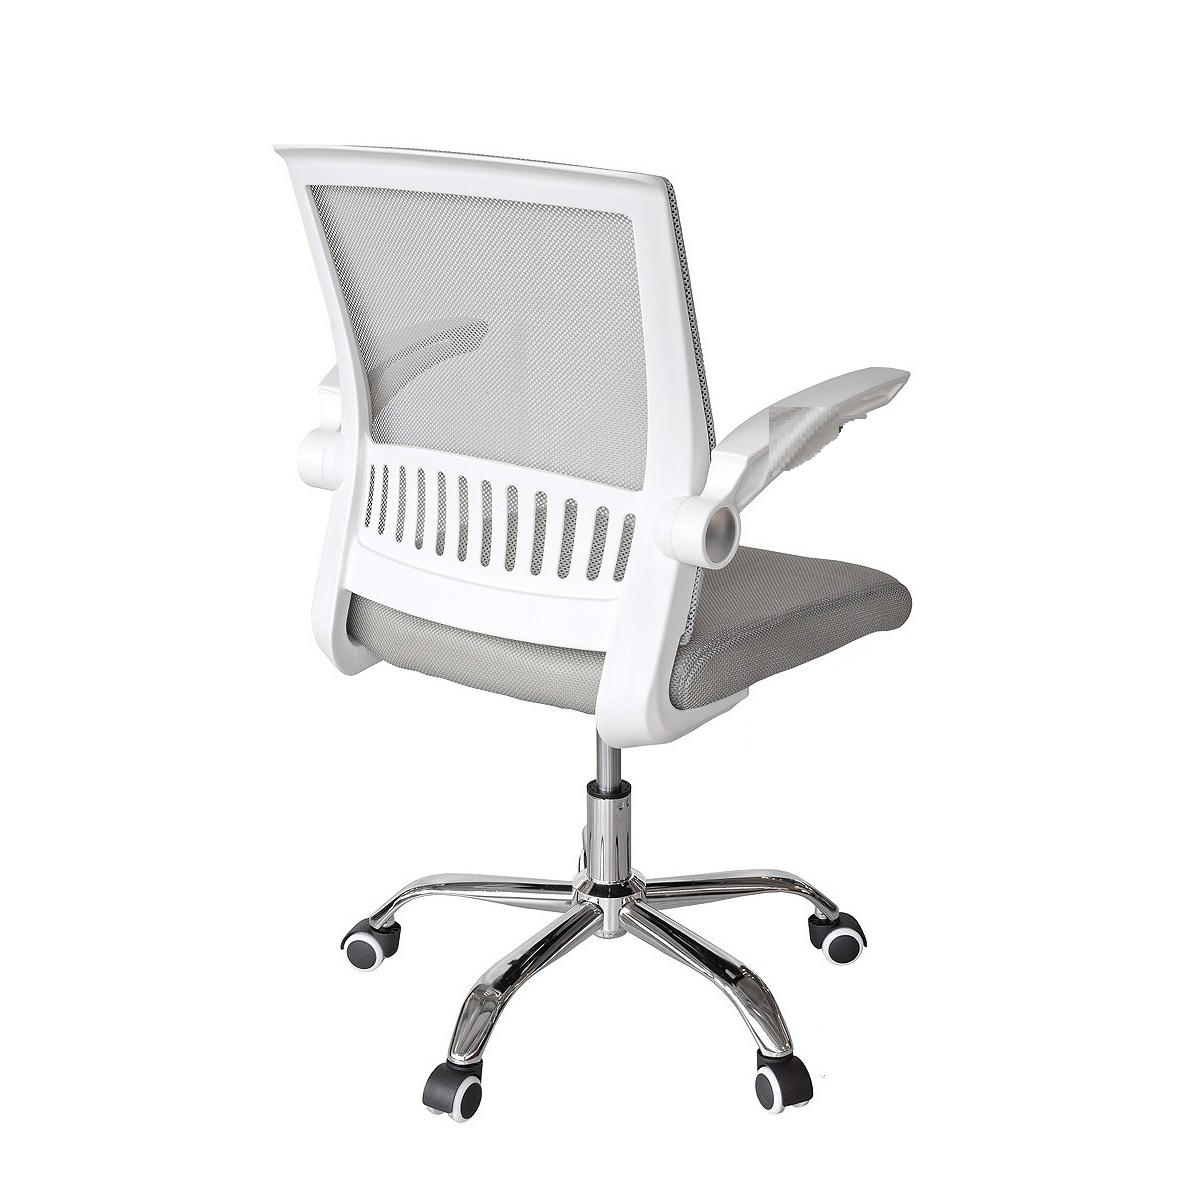 Bicester Mesh Office Chair In Grey And White With Chrome Base_2